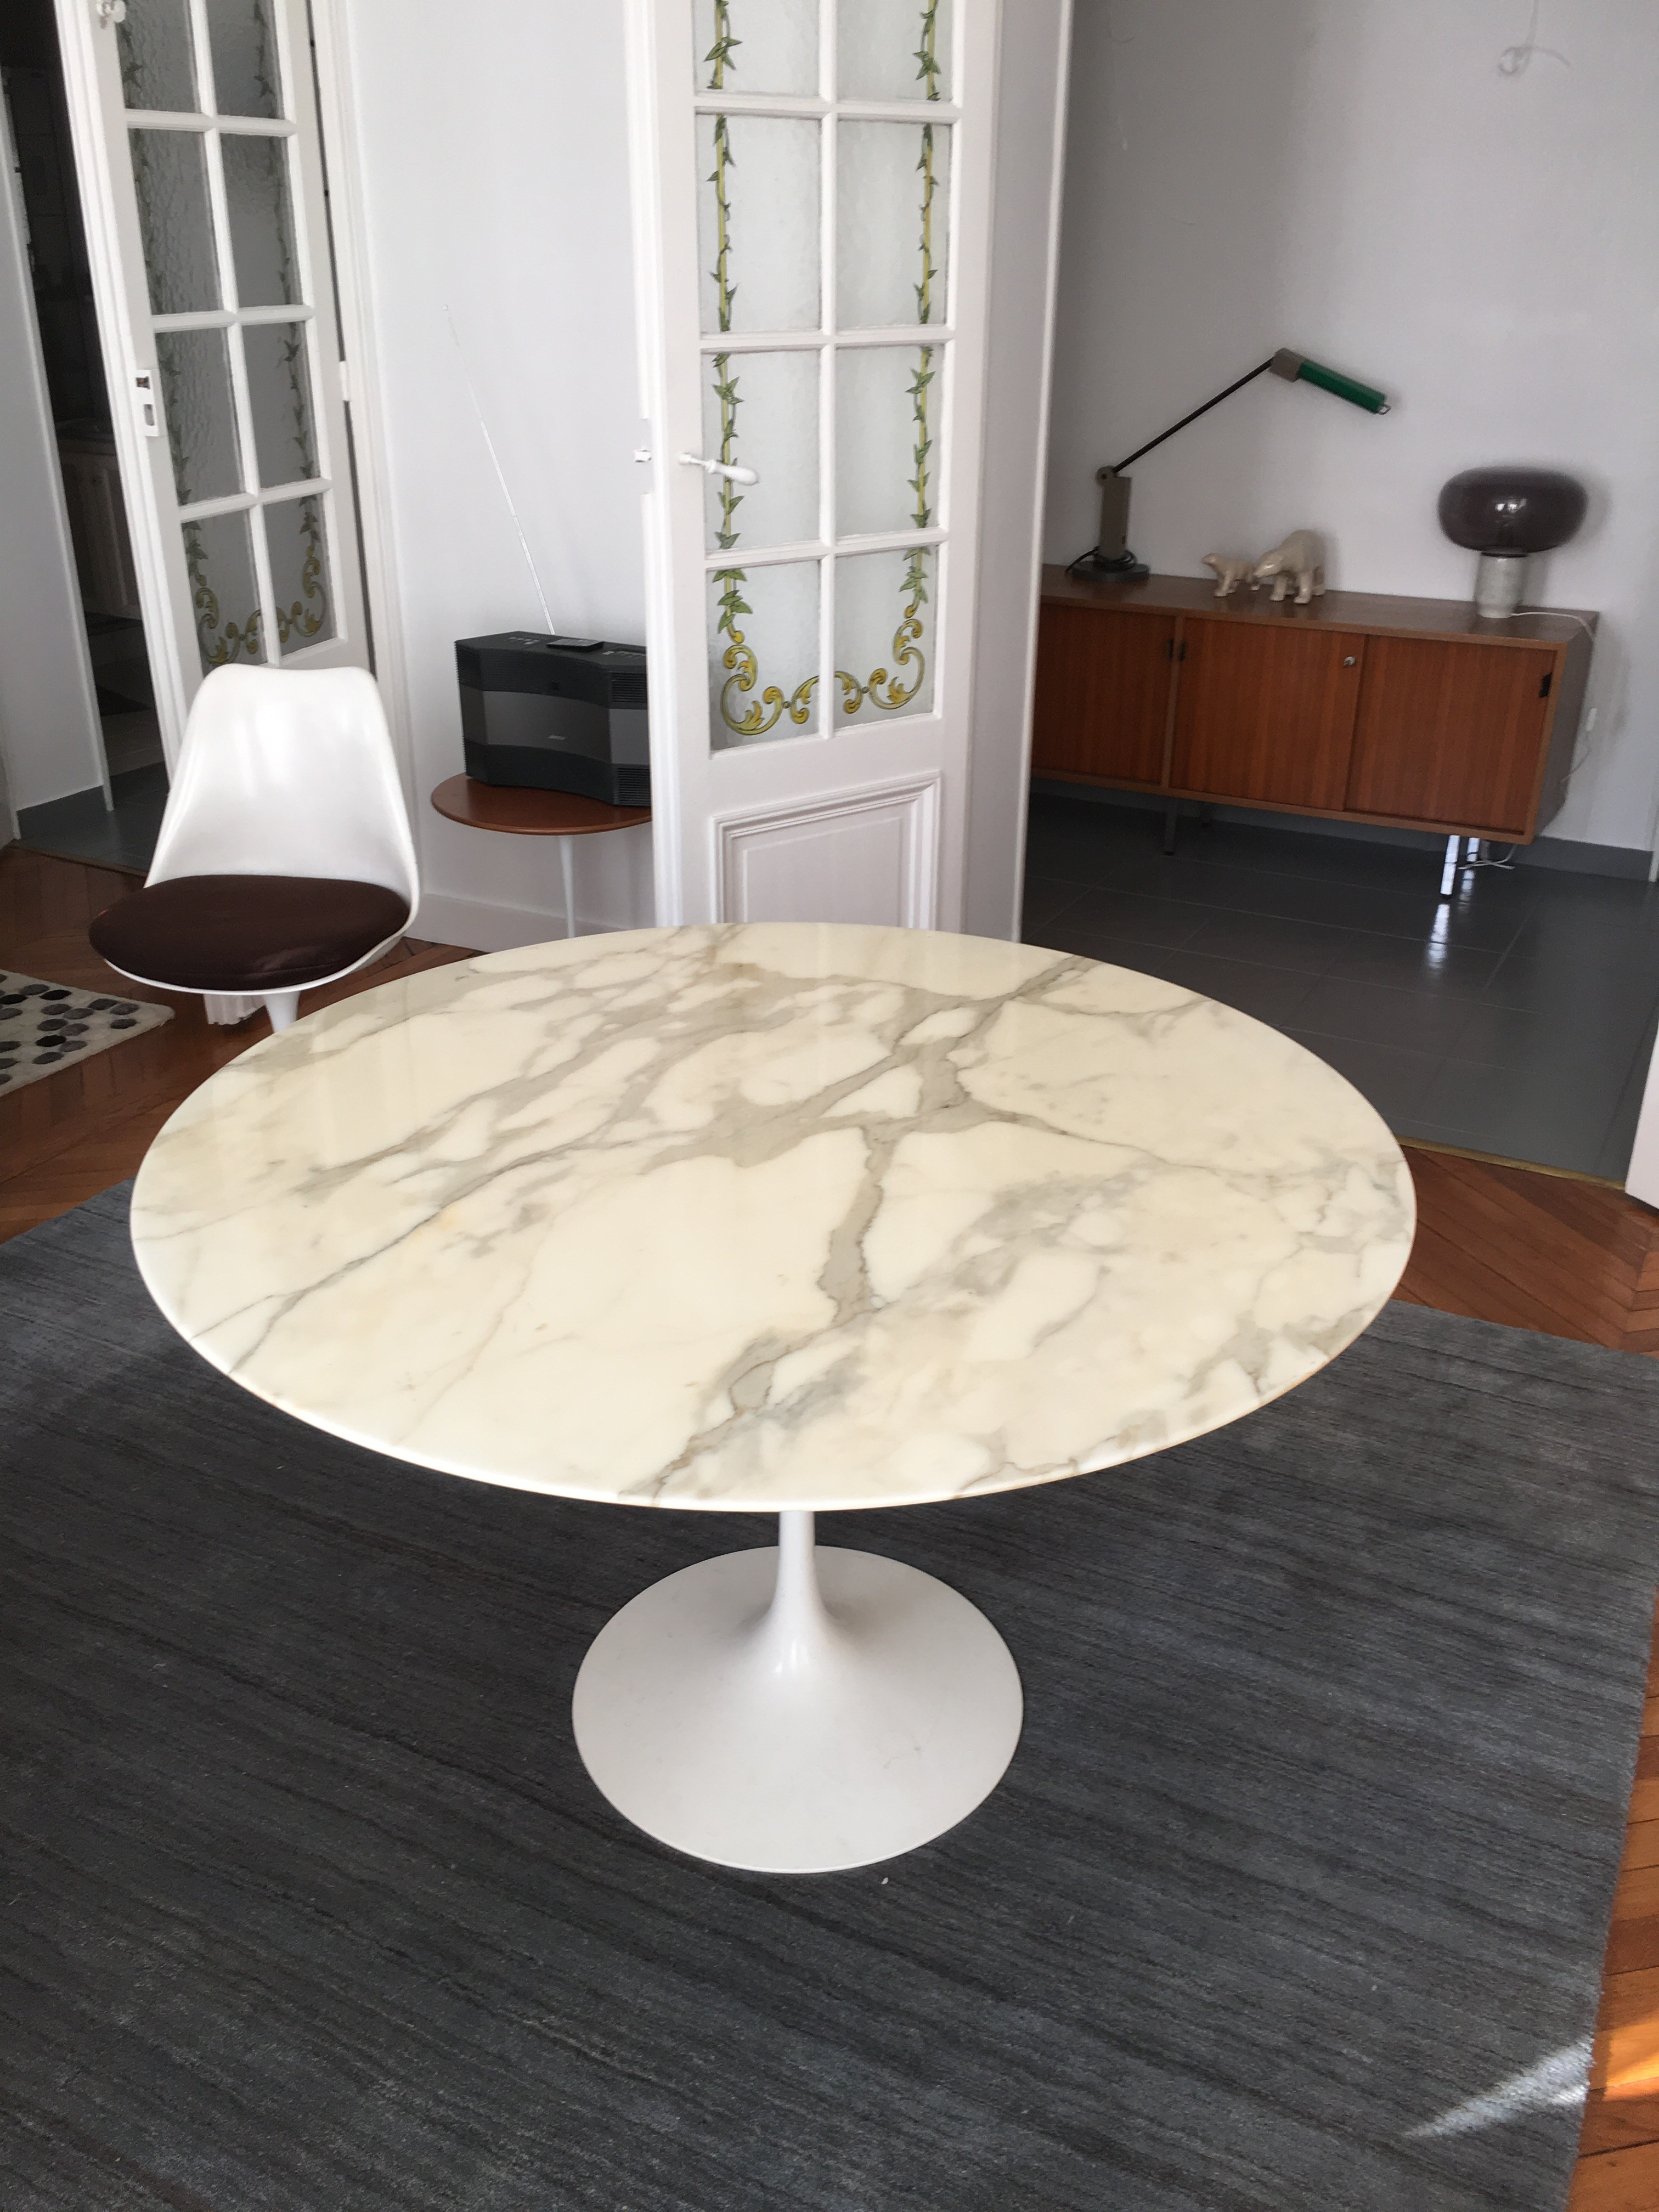 Atelier 50 Table Tulipe Saarinen 120 Cm édition Knoll L Atelier 50